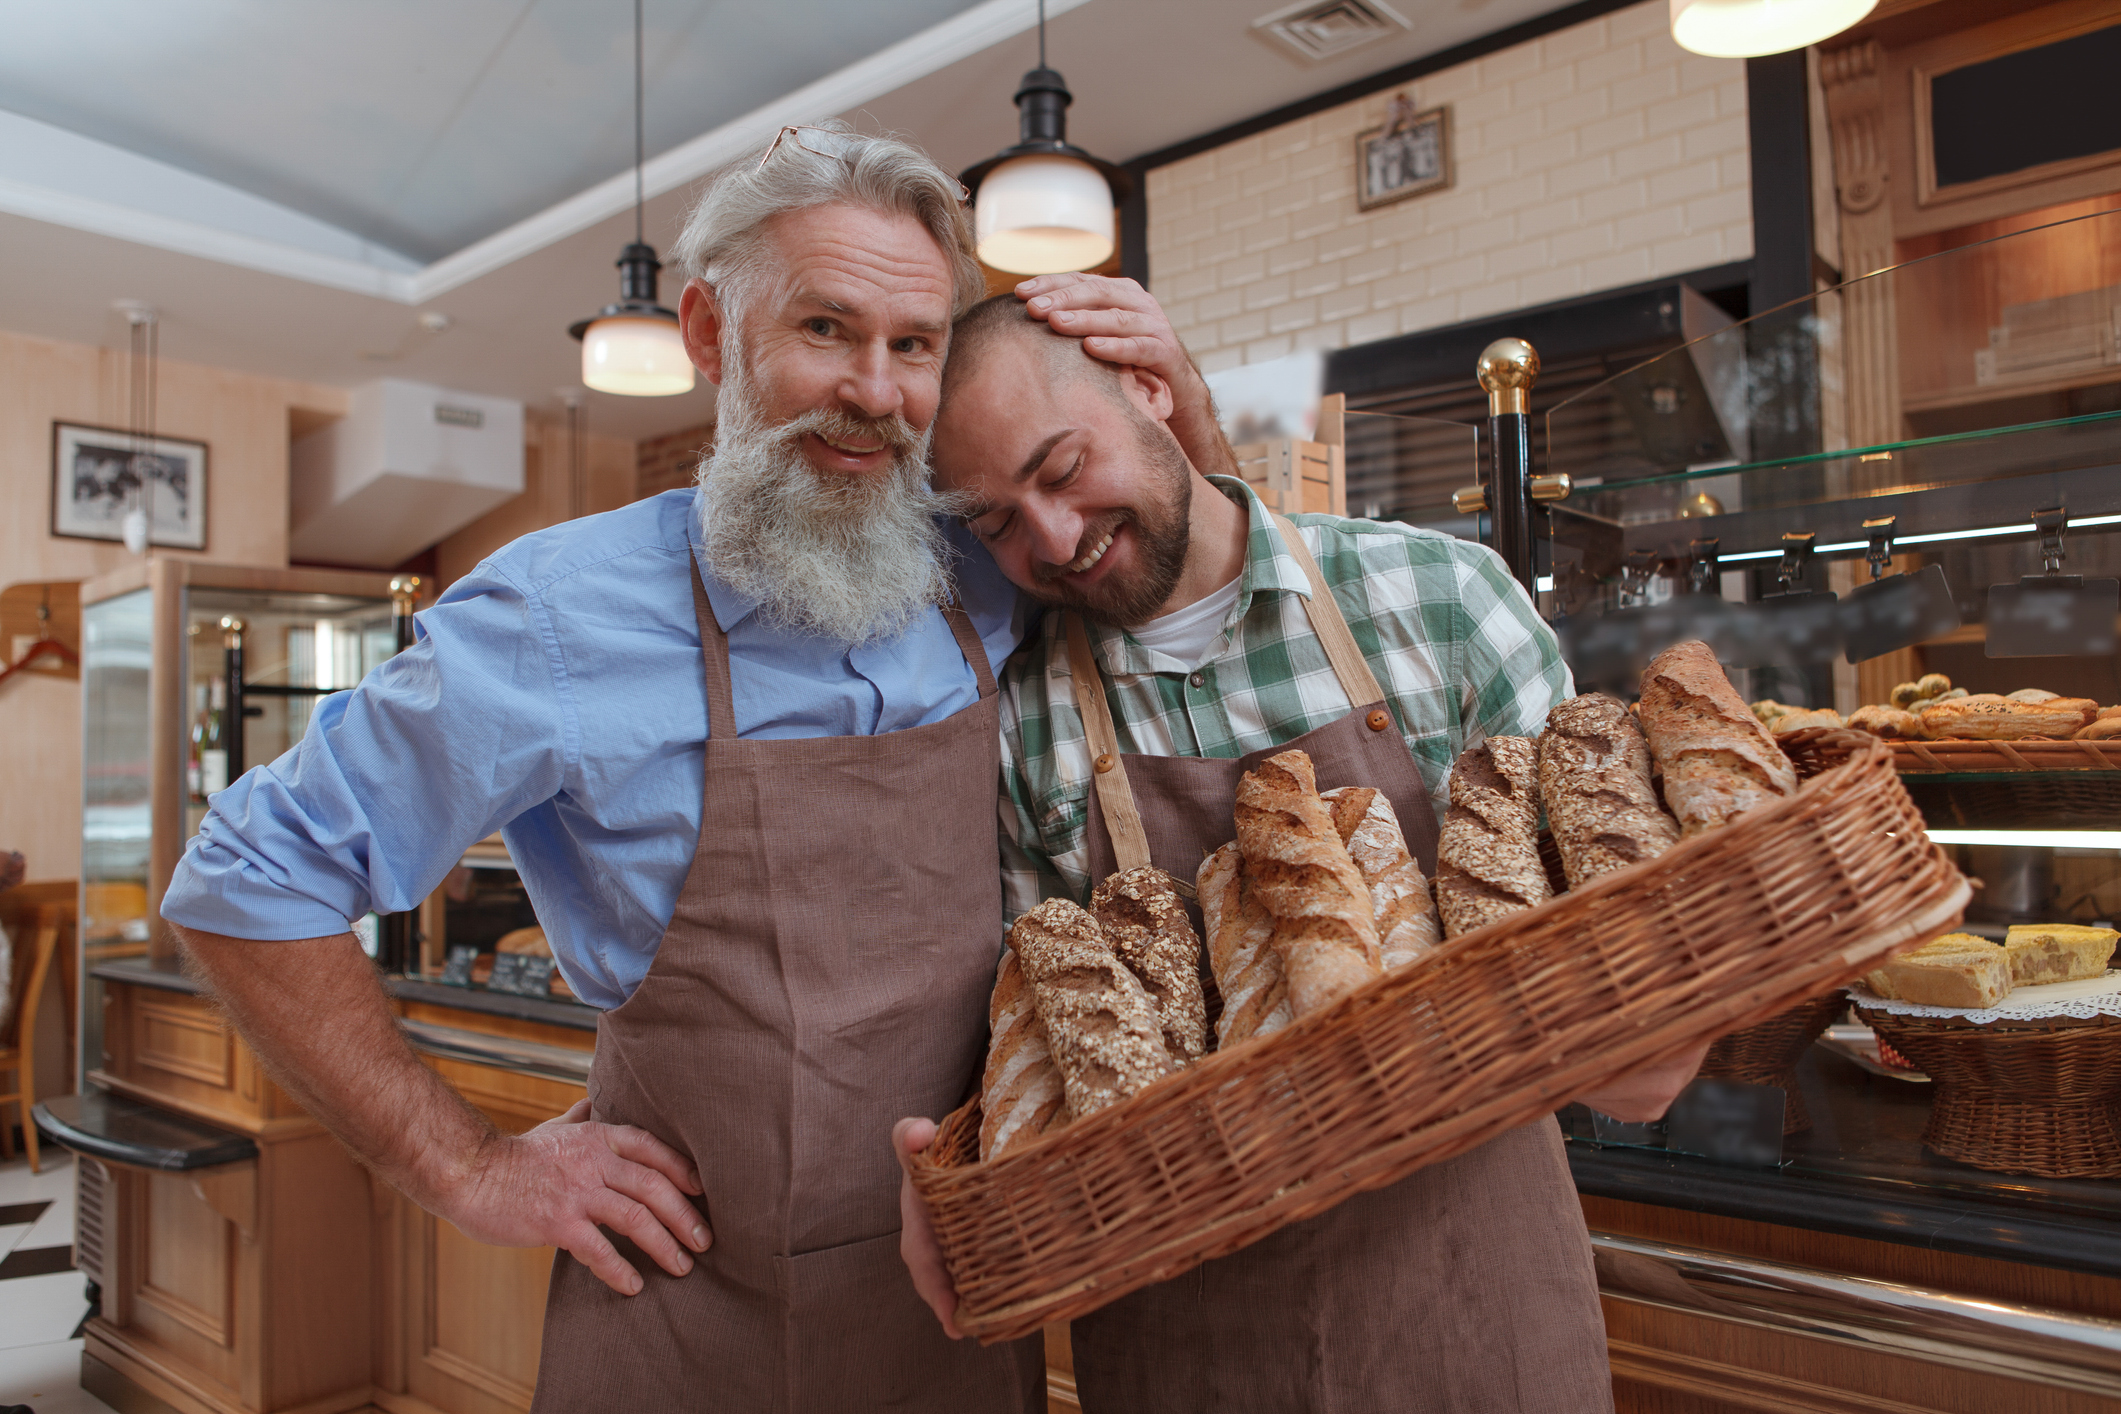 Father and son at a bakery - small business recommendations | Crunch